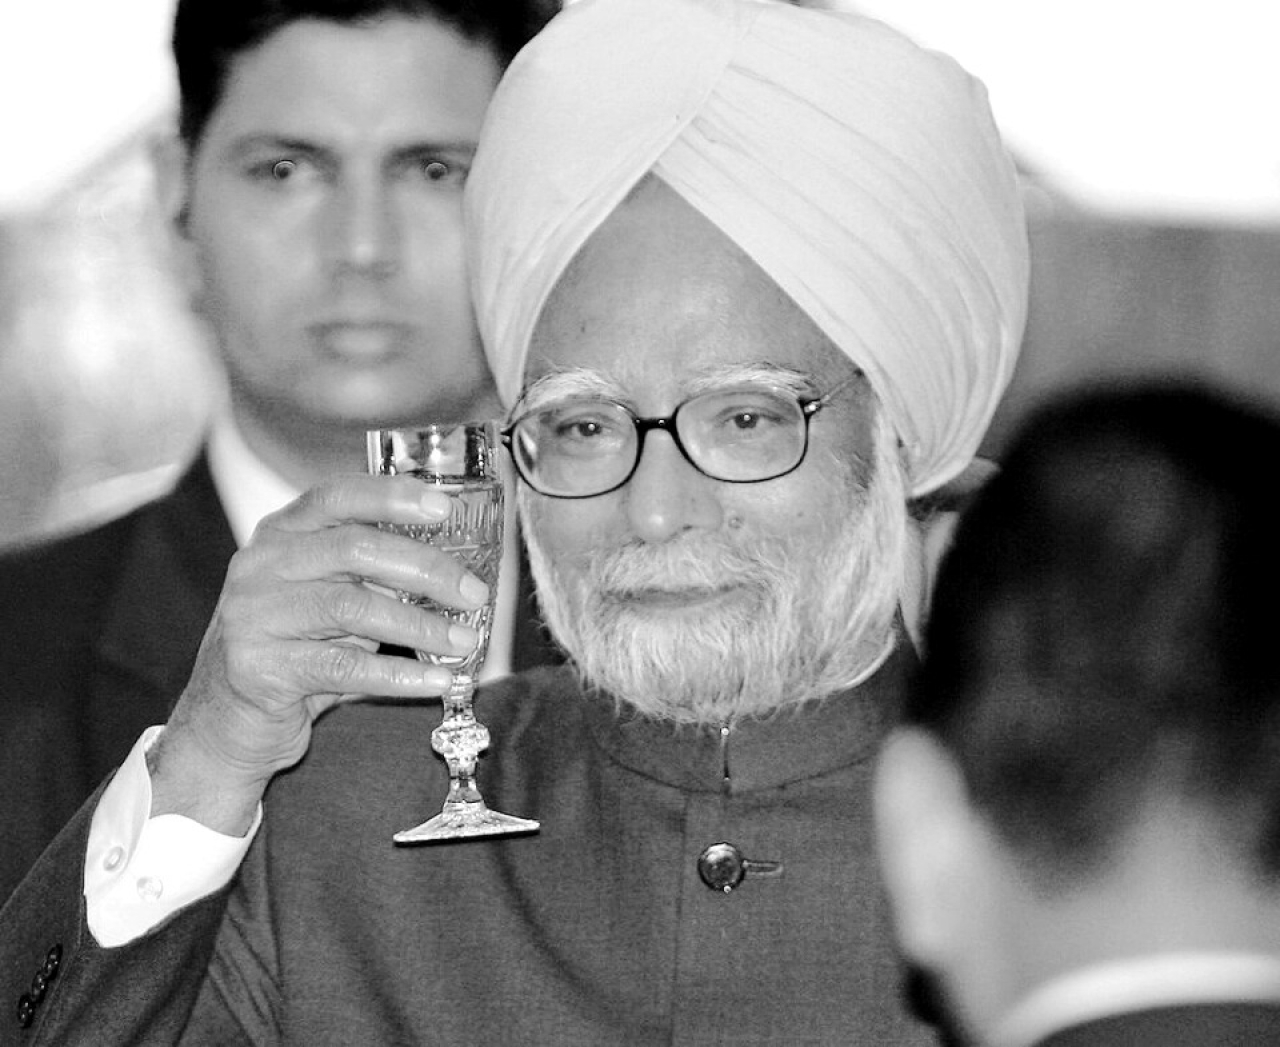 Manmohan Singh (YOSHIKAZU TSUNO/AFP/Getty Images)